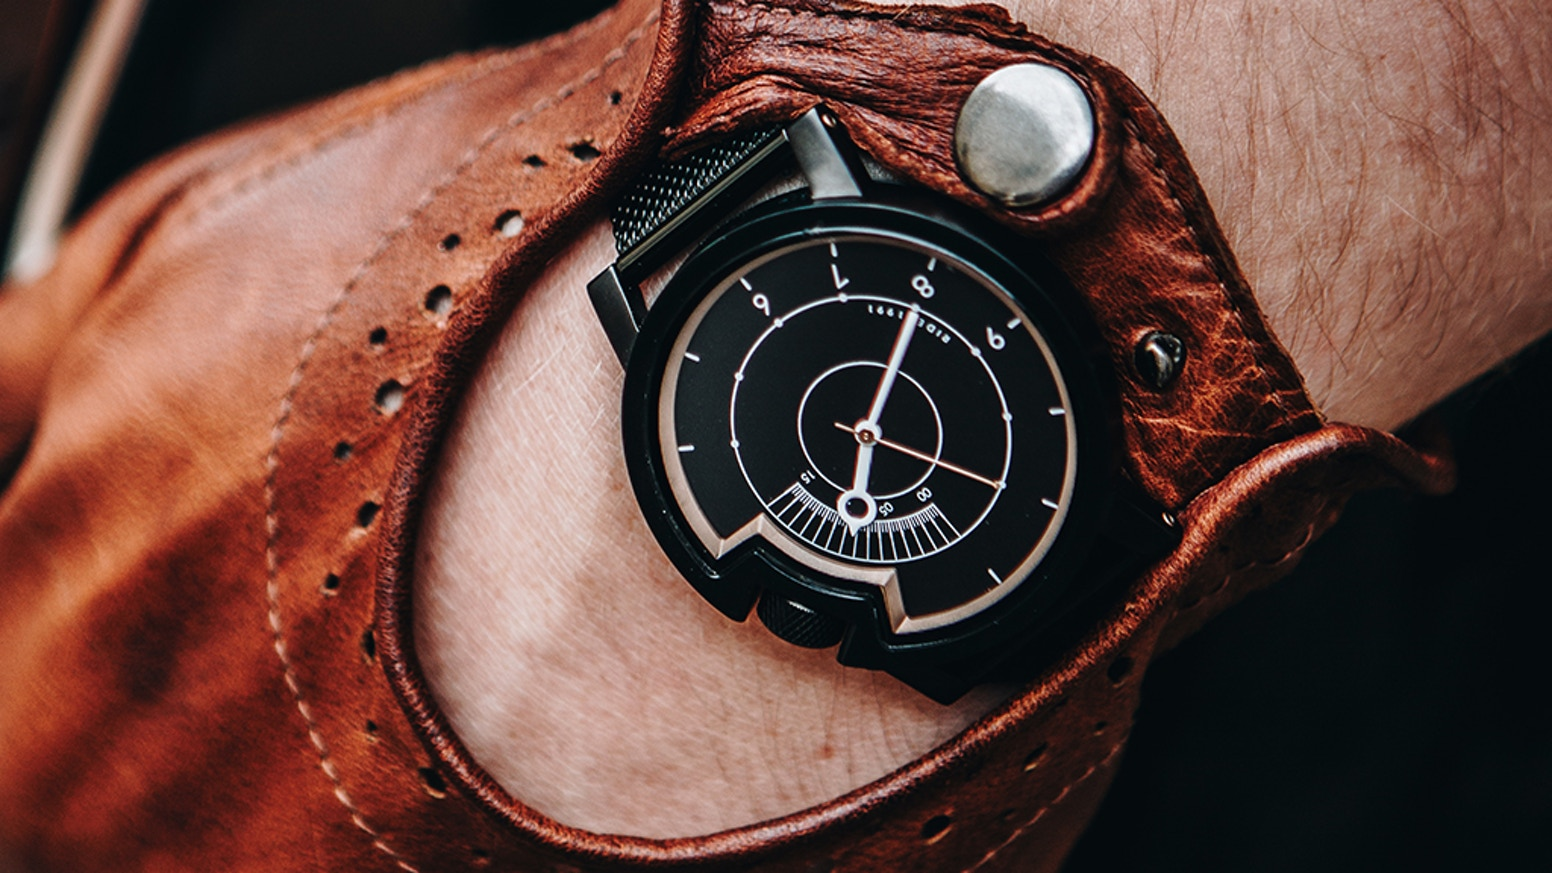 Wrist watches for free motion through lifetime with unique case design inspired by the Café Racer motorbike culture.